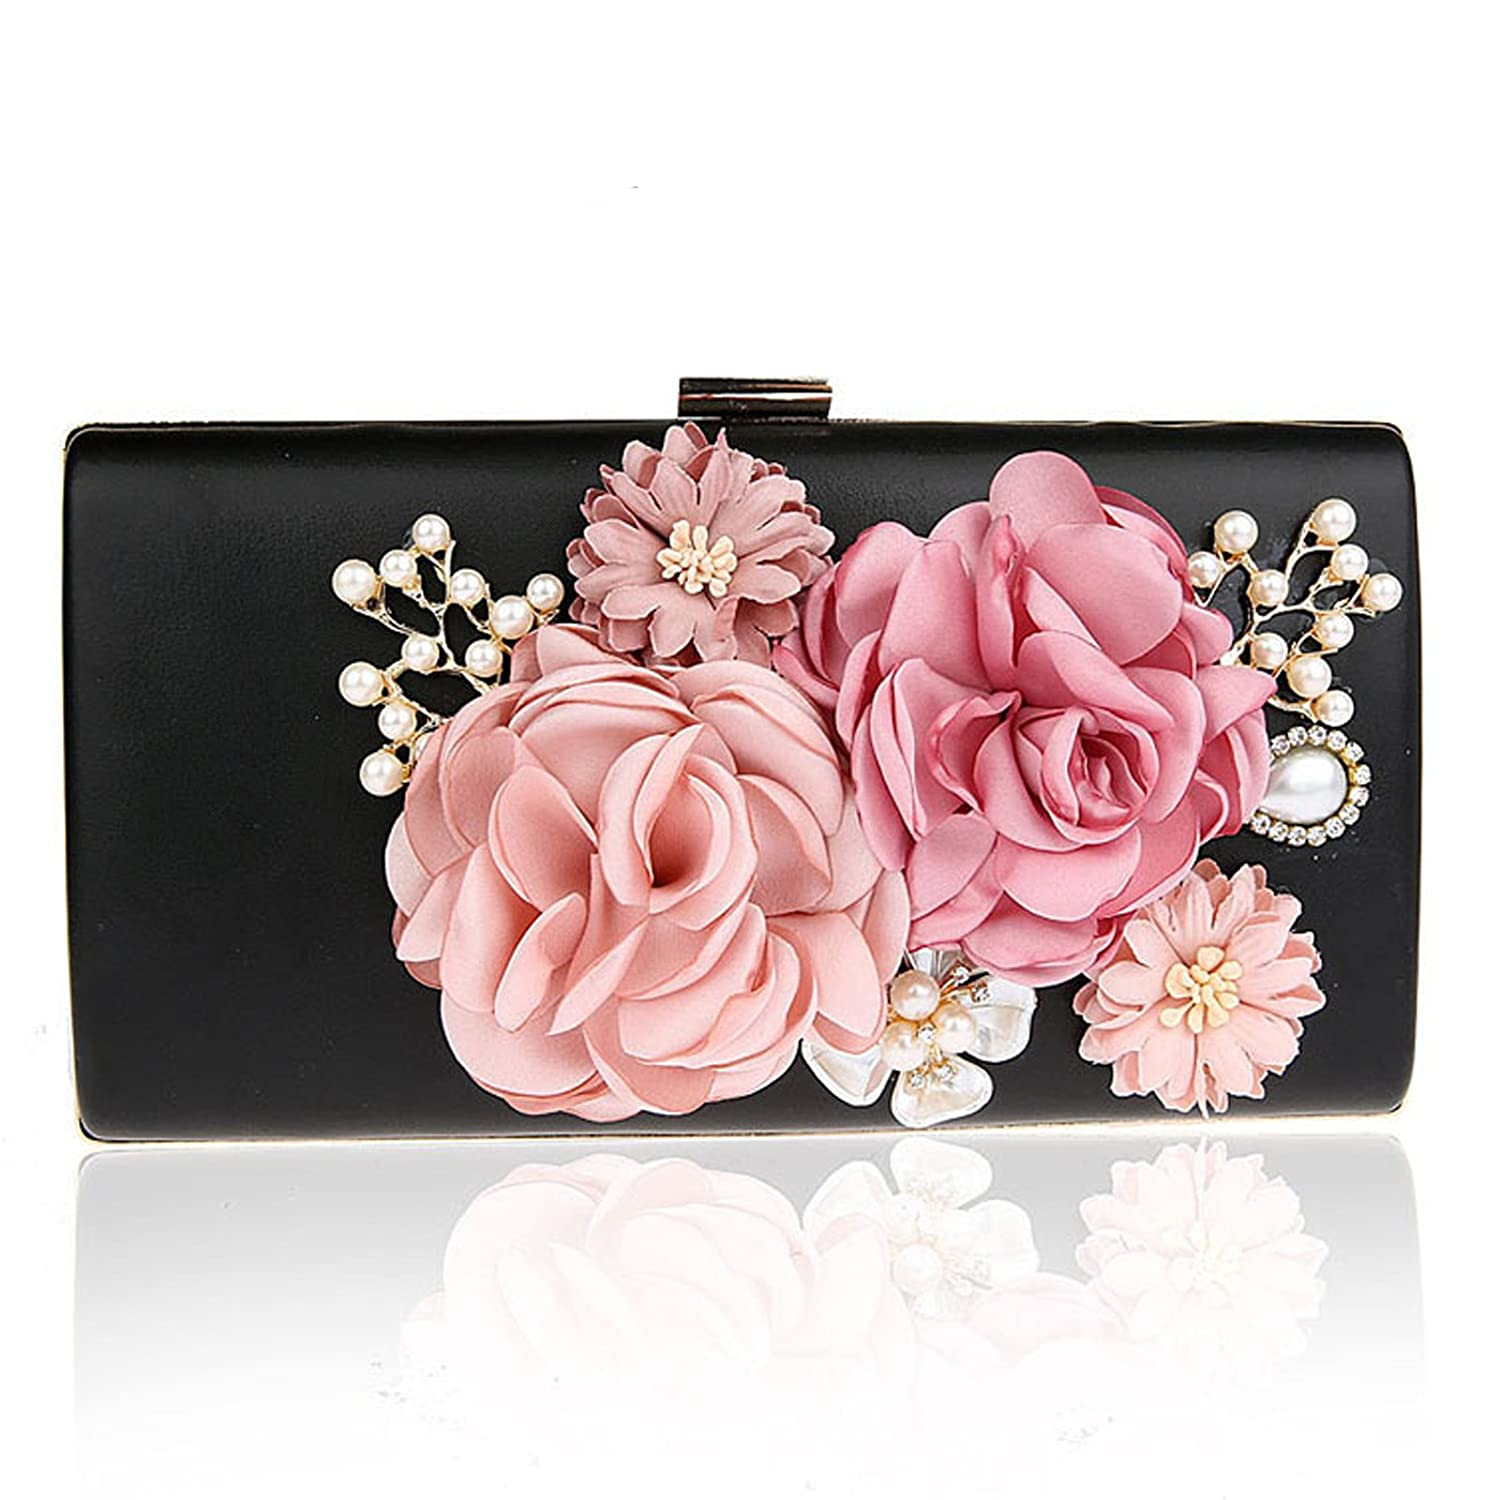 8bf2c47dccdb Womens Floral Evening Bags and Clutches Beaded Pearls Prom Party Handbags  Purse Black  Handbags  Amazon.com